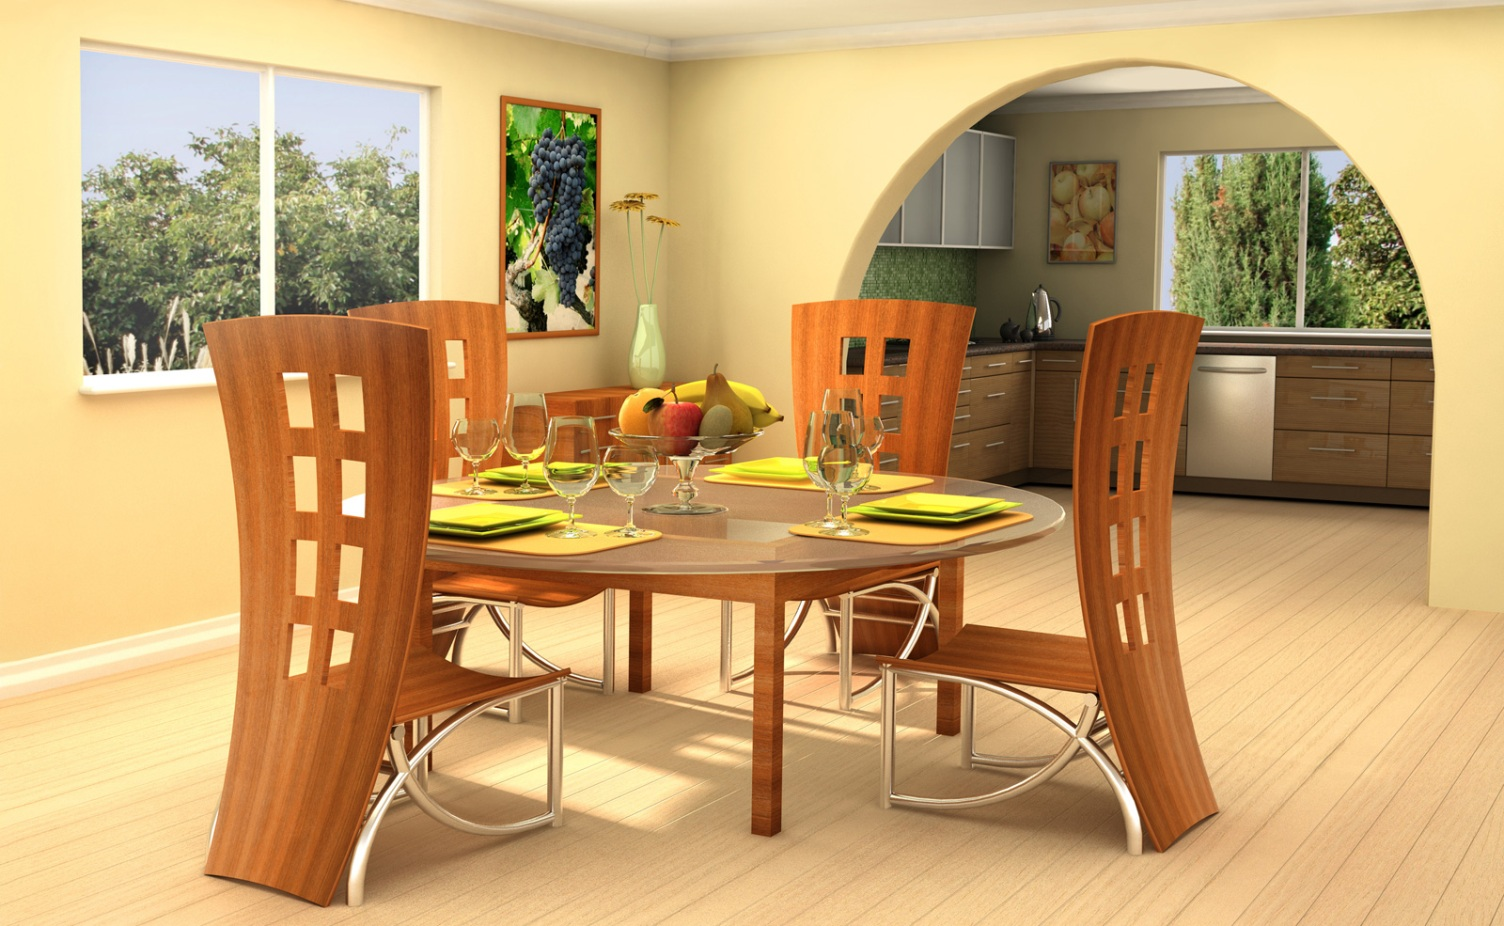 Go Creative And Pick Unique Dining Room Table Chairs